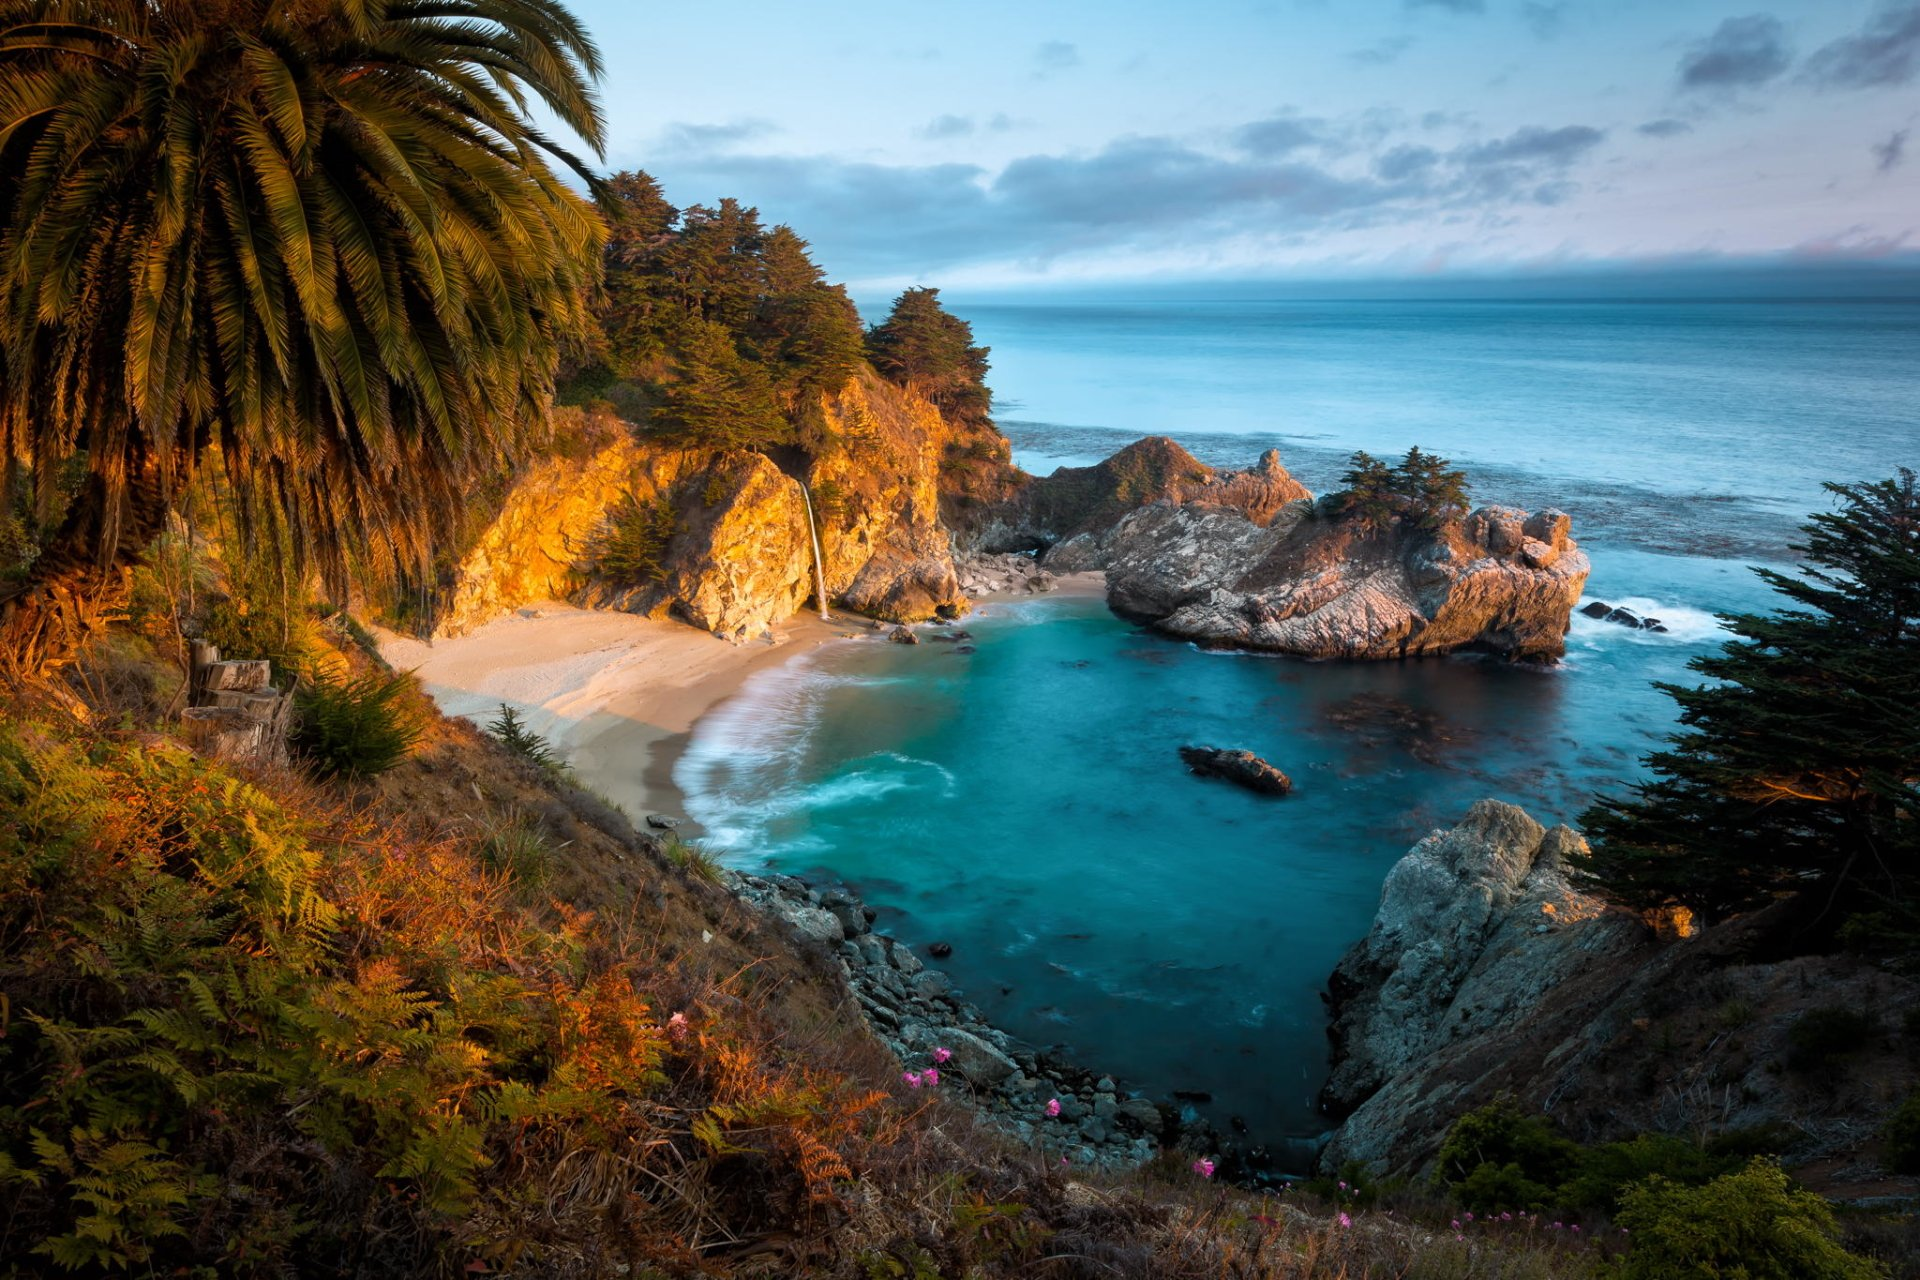 Earth - Coastline  Earth Bay Coast Ocean Sea Rock McWay Falls Julia Pfeiffer Burns State Park California Horizon Wallpaper